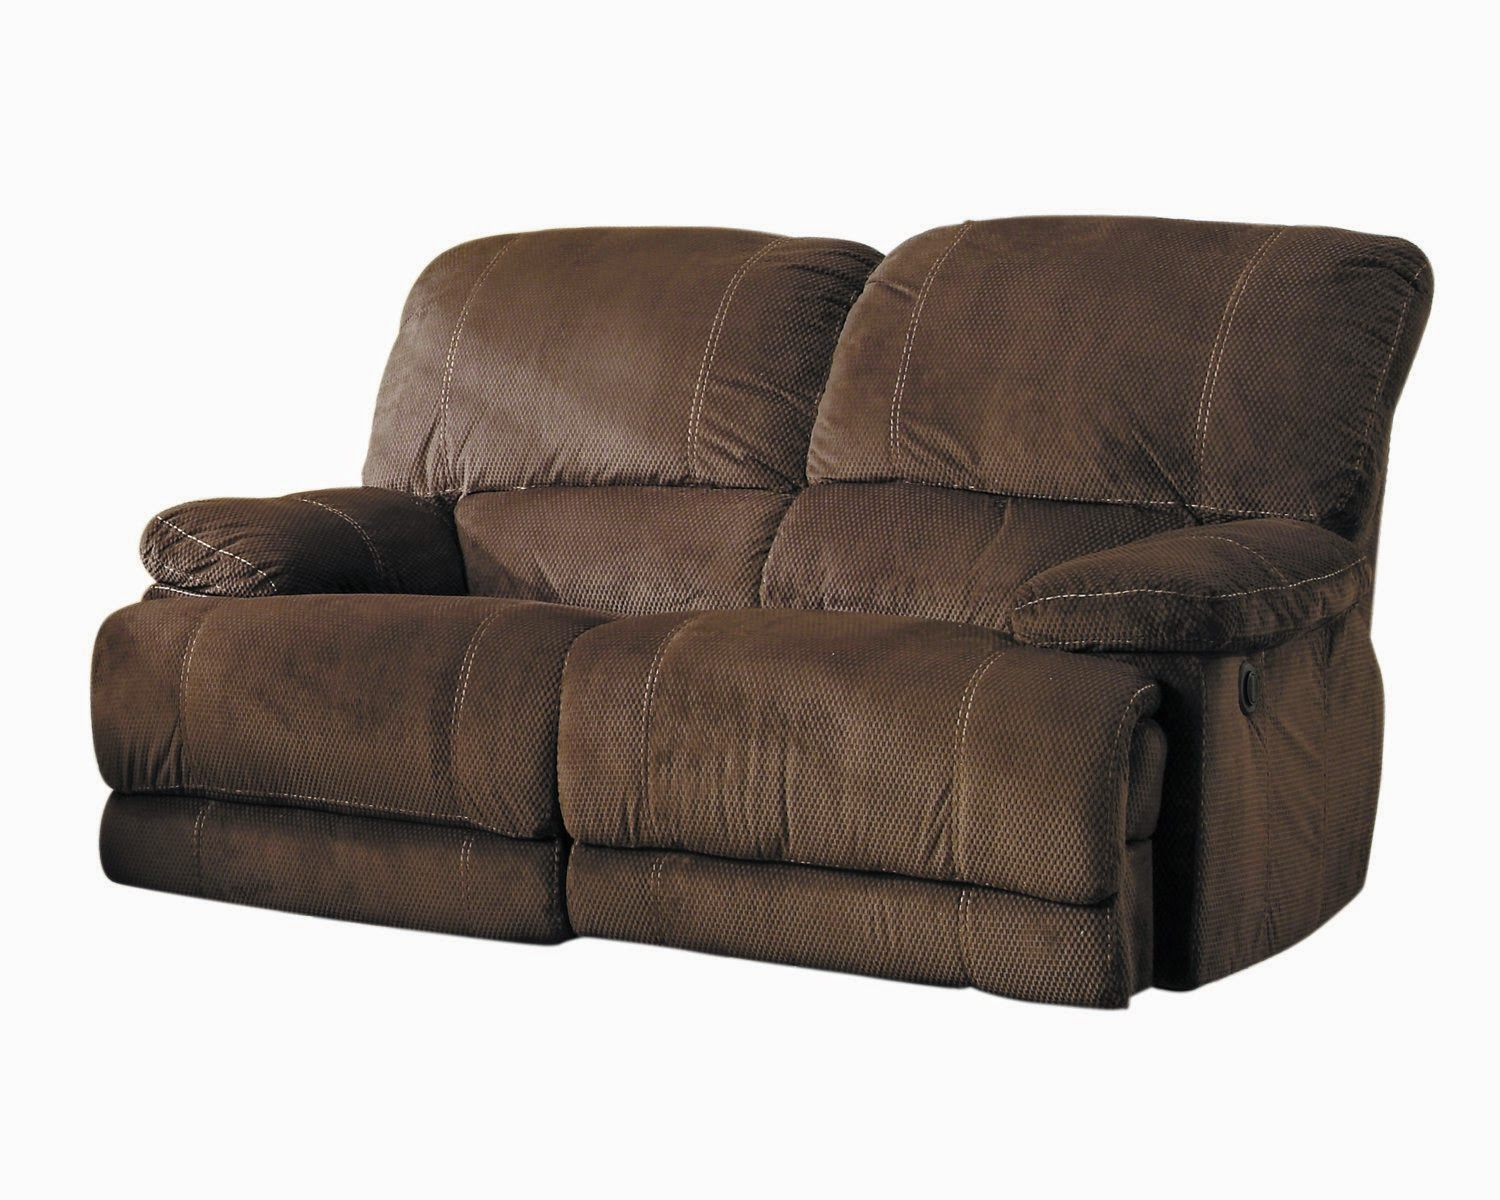 Cheap Reclining Sofas Sale March 2015 : upholstered dual power reclining leather sofa from cheaprecliningsofassale.blogspot.com size 1500 x 1200 jpeg 207kB